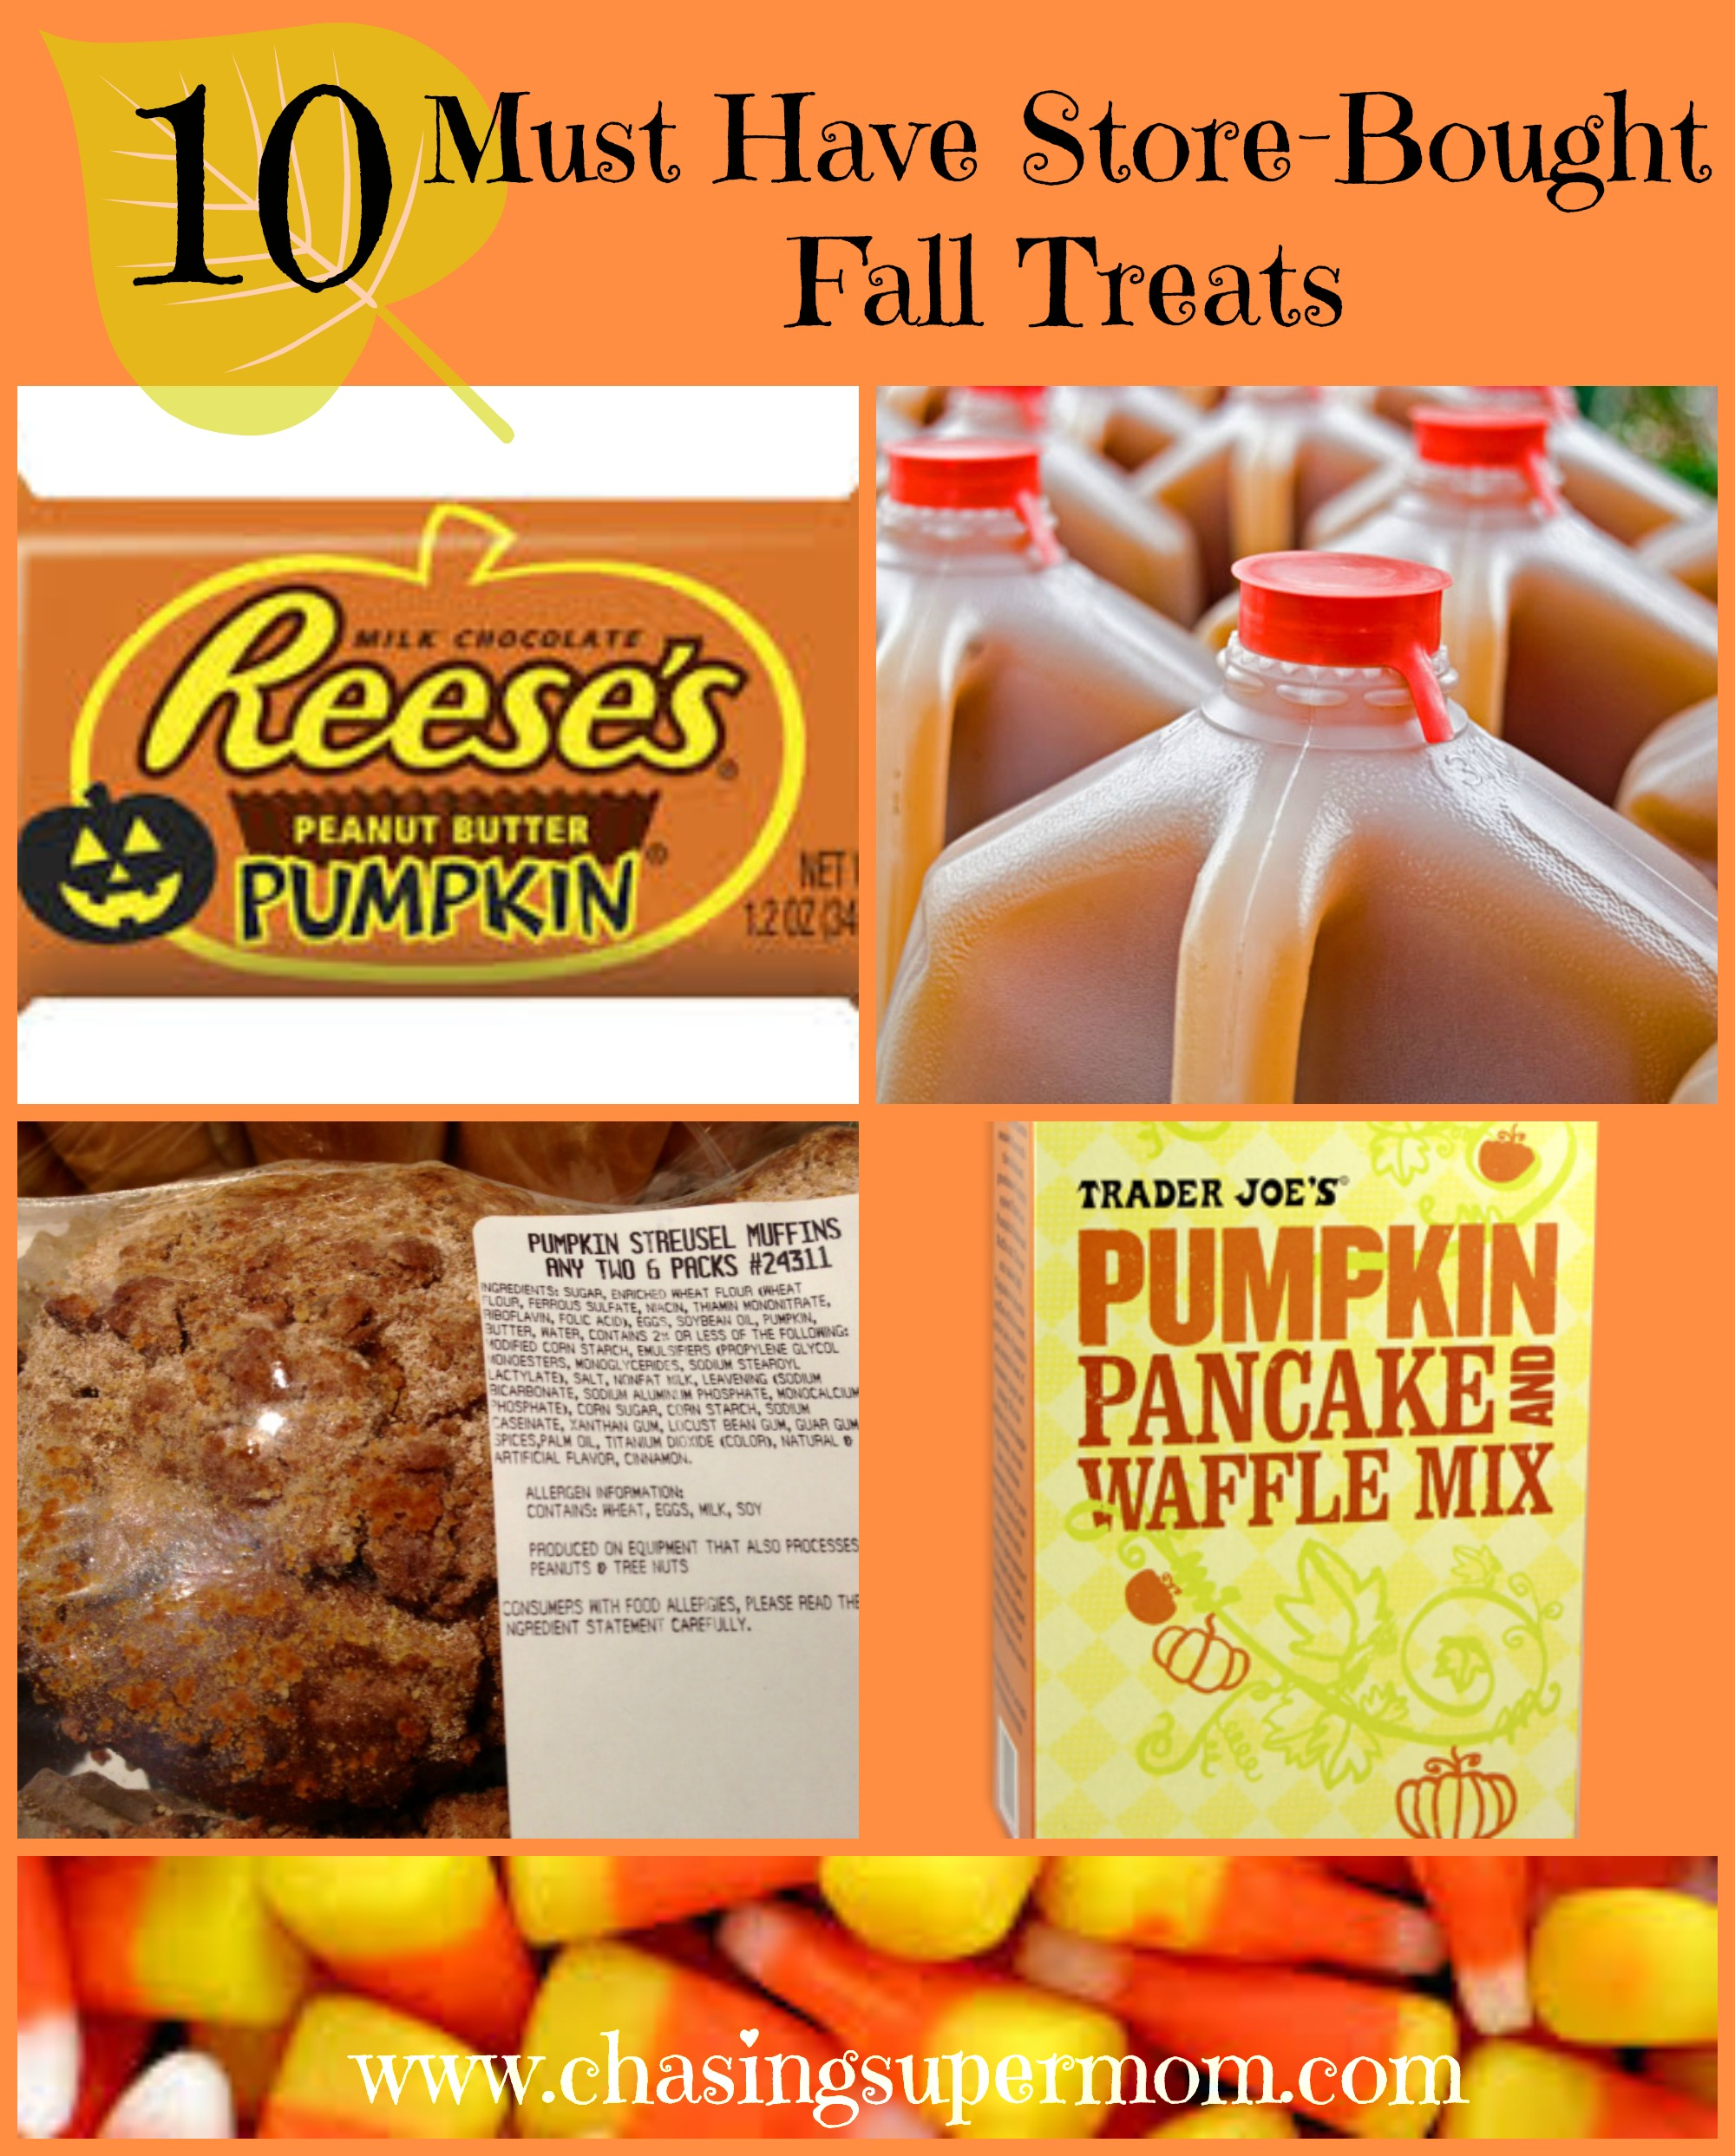 10 Must Have Store-Bought Fall Treats